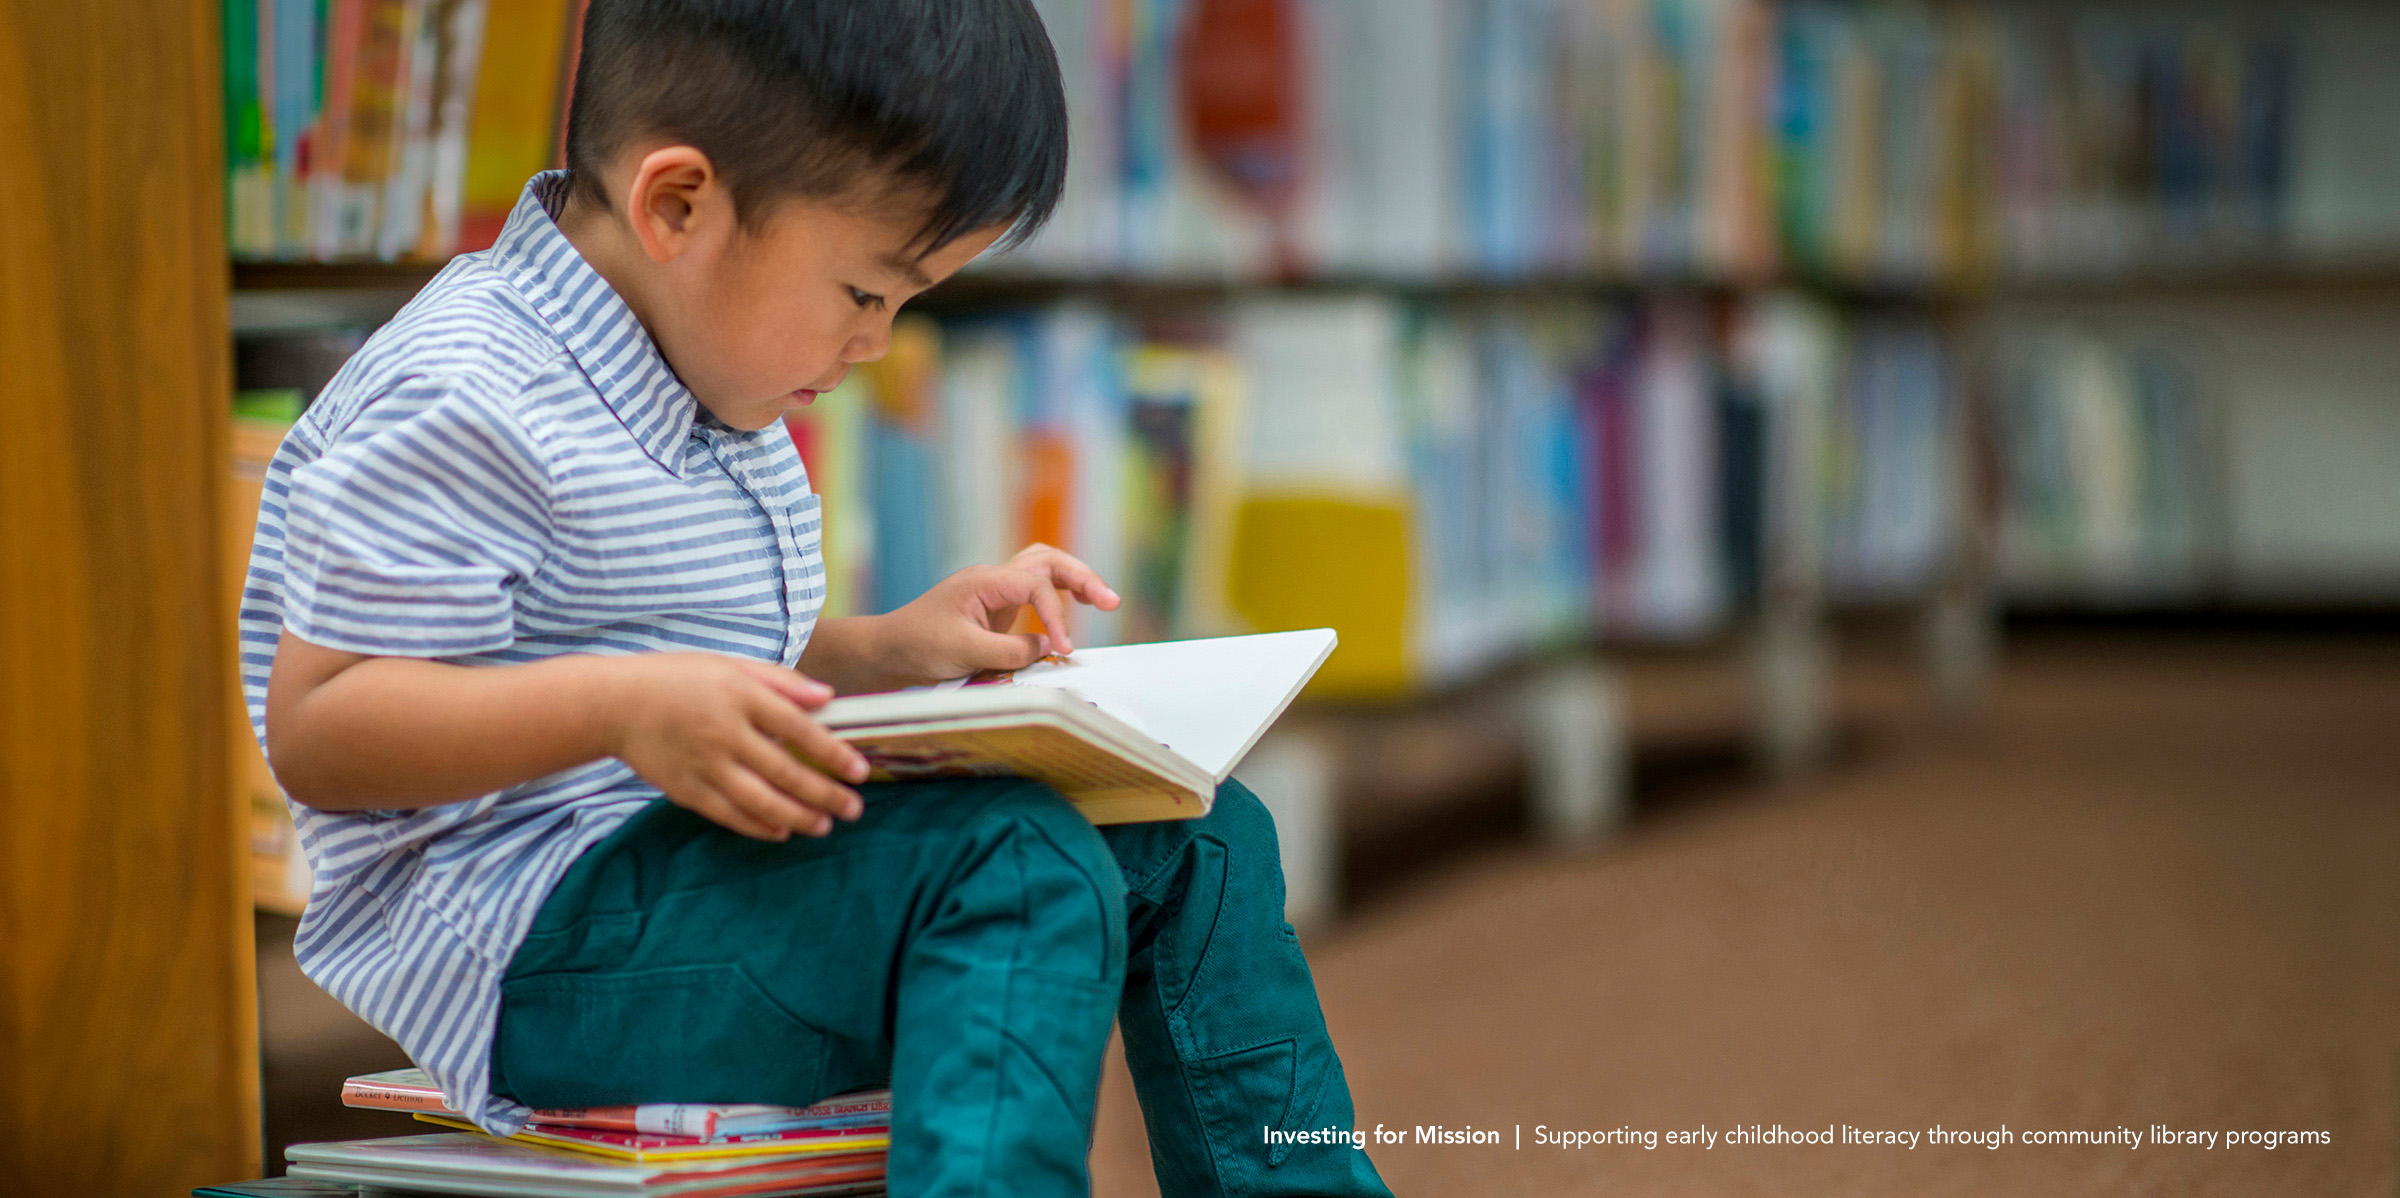 Investing for Mission | Supporting early childhood literacy through community library programs